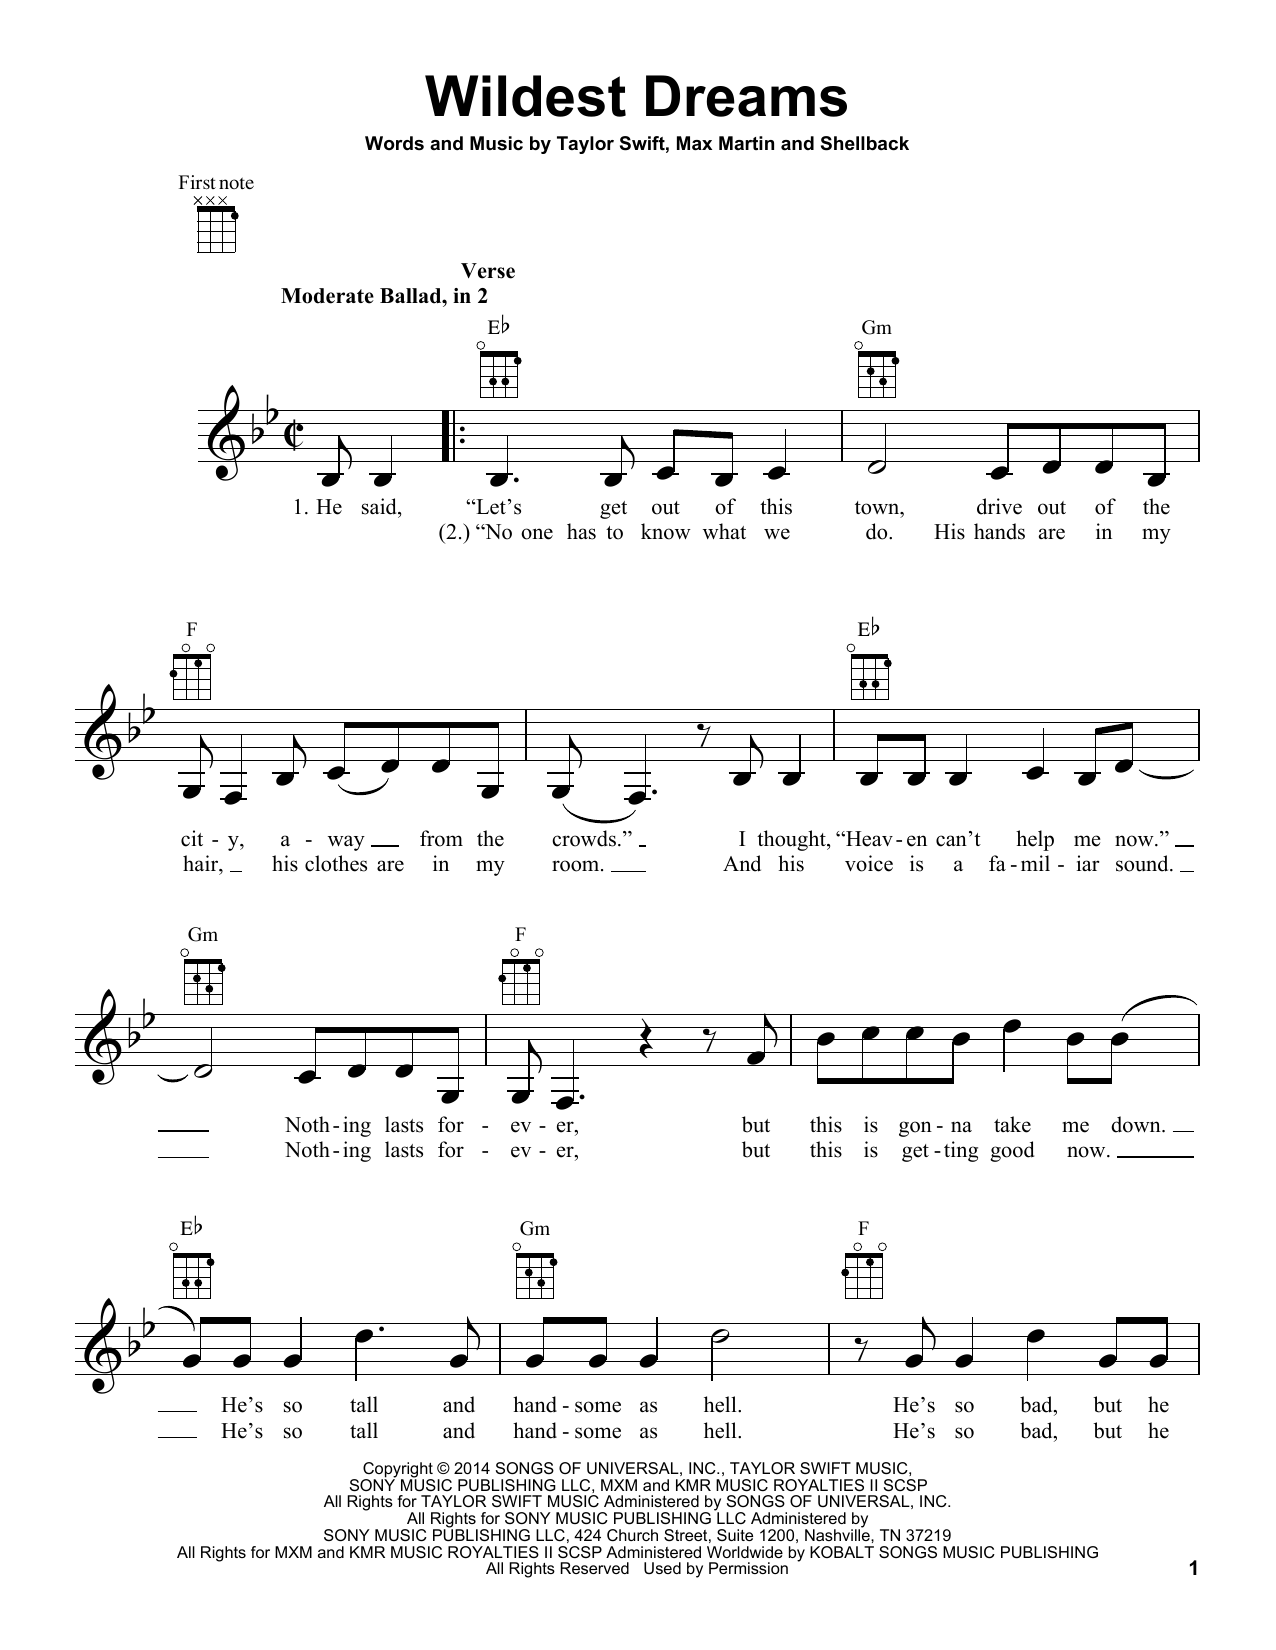 Ukulele ukulele tabs taylor swift : Wildest Dreams by Taylor Swift - Ukulele - Guitar Instructor